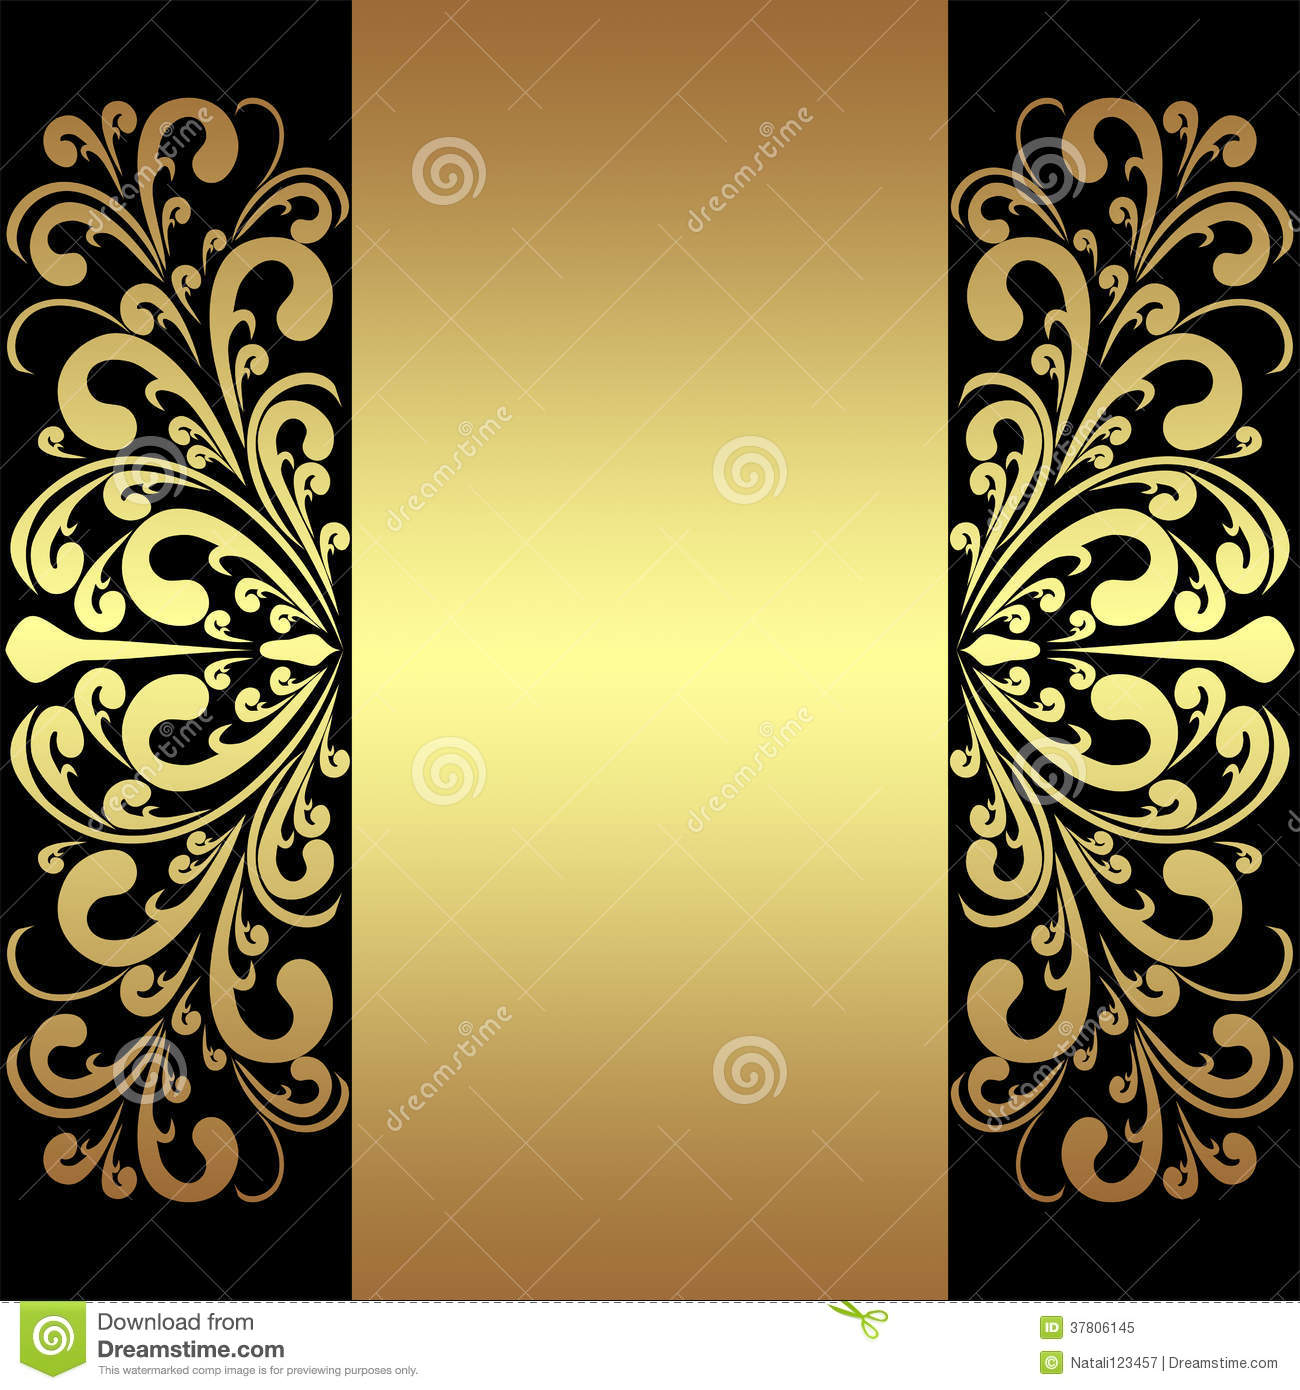 Luxury Background With Golden Royal Borders And Ribbon